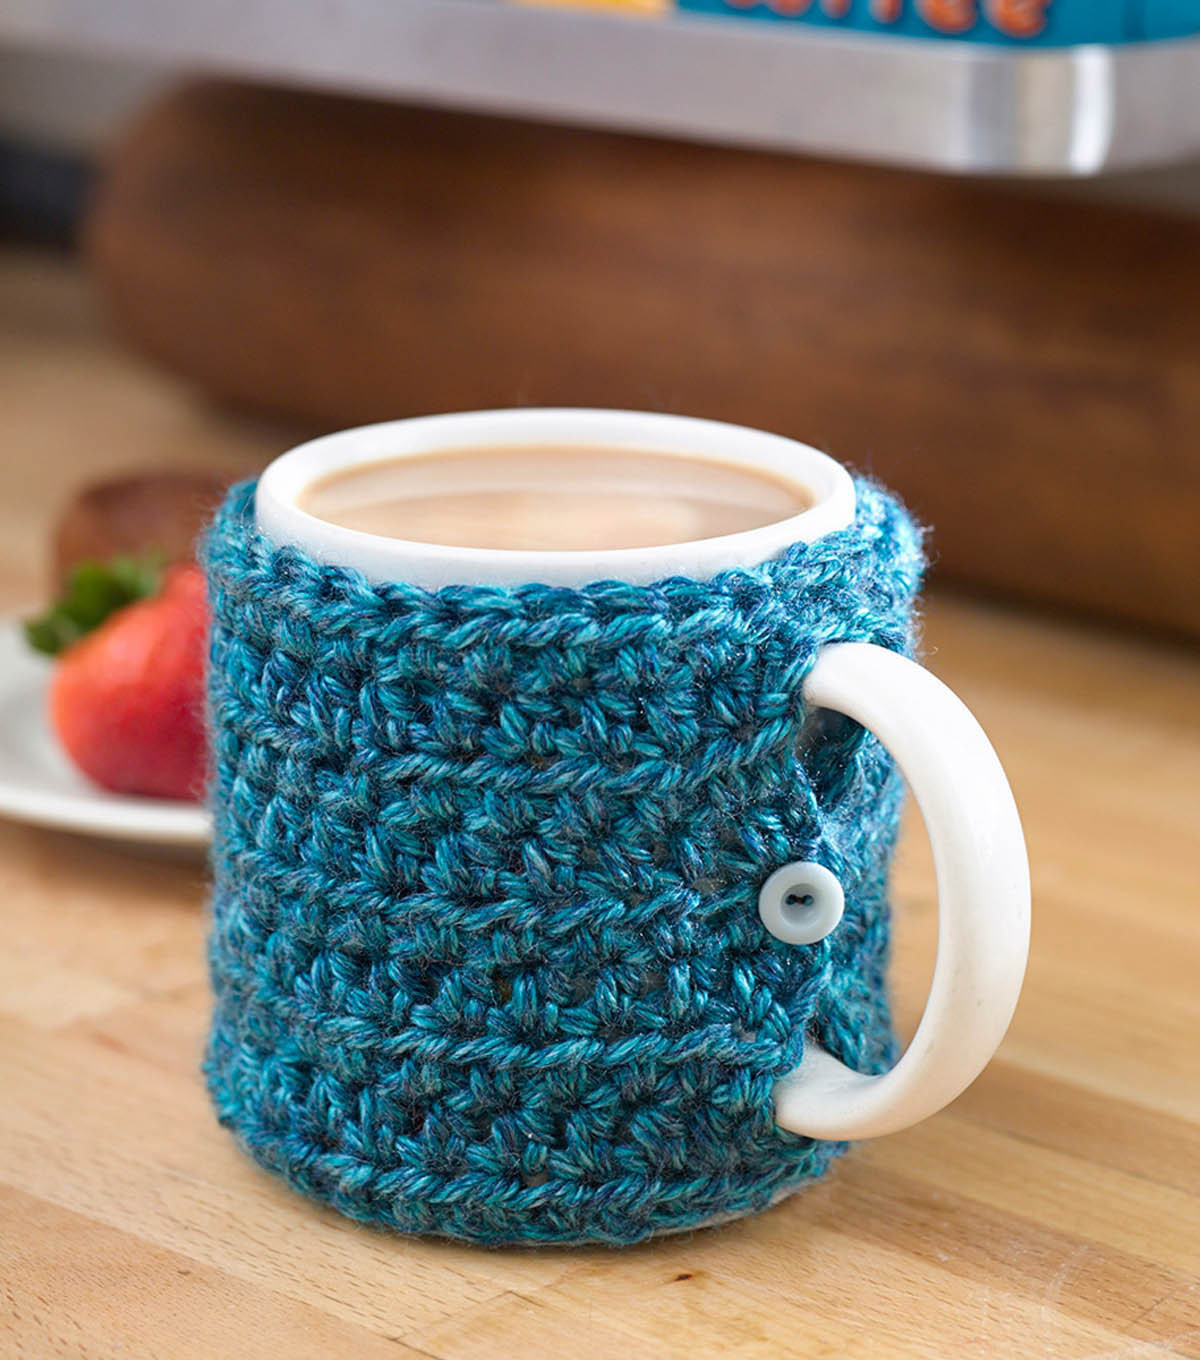 Crochet Coffee Cup Cozy Best Of Craftdrawer Crafts Free Easy to Crochet Mug Cozy Patterns Of Crochet Coffee Cup Cozy Awesome Crochet and Other Stuff Crochet A Mug Cozy Free Pattern